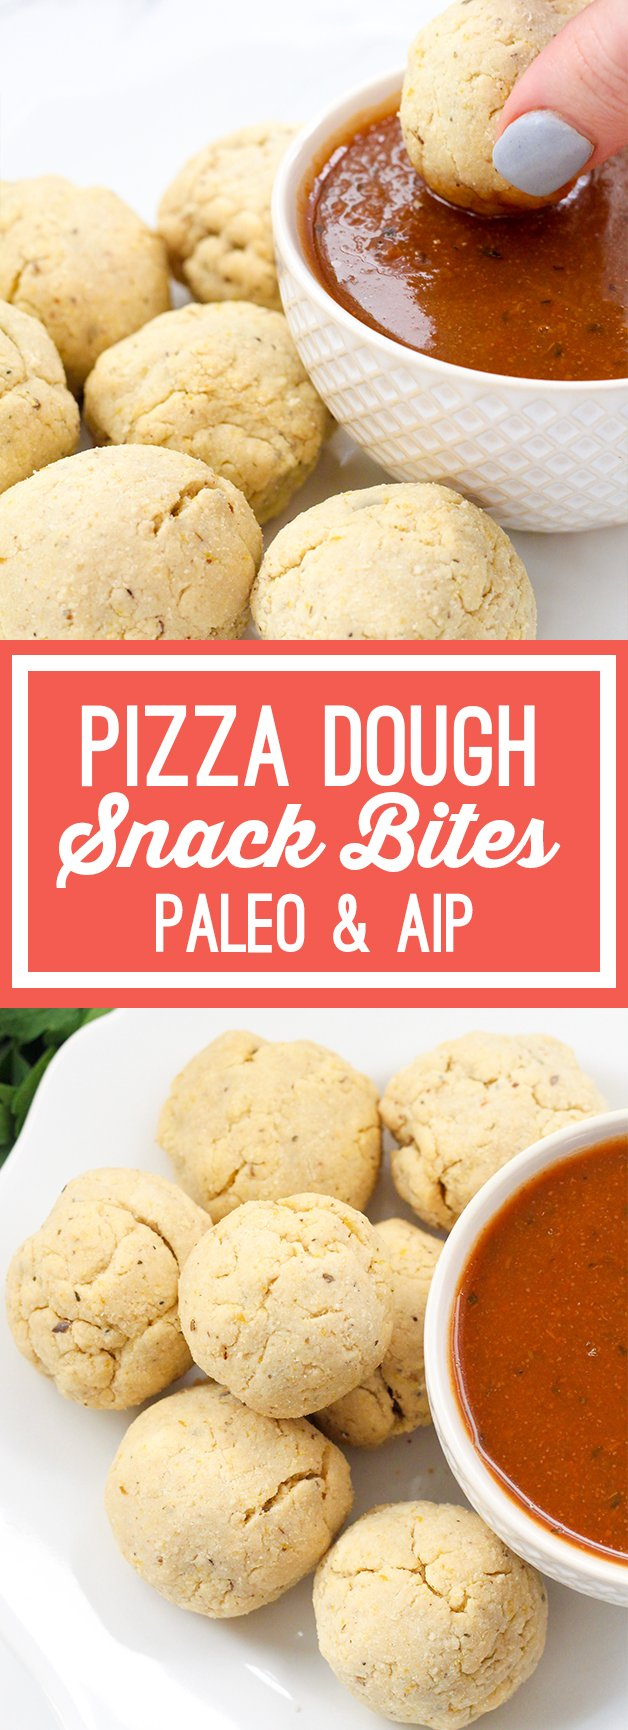 Paleo Pizza Dough Snack Bites (AIP)